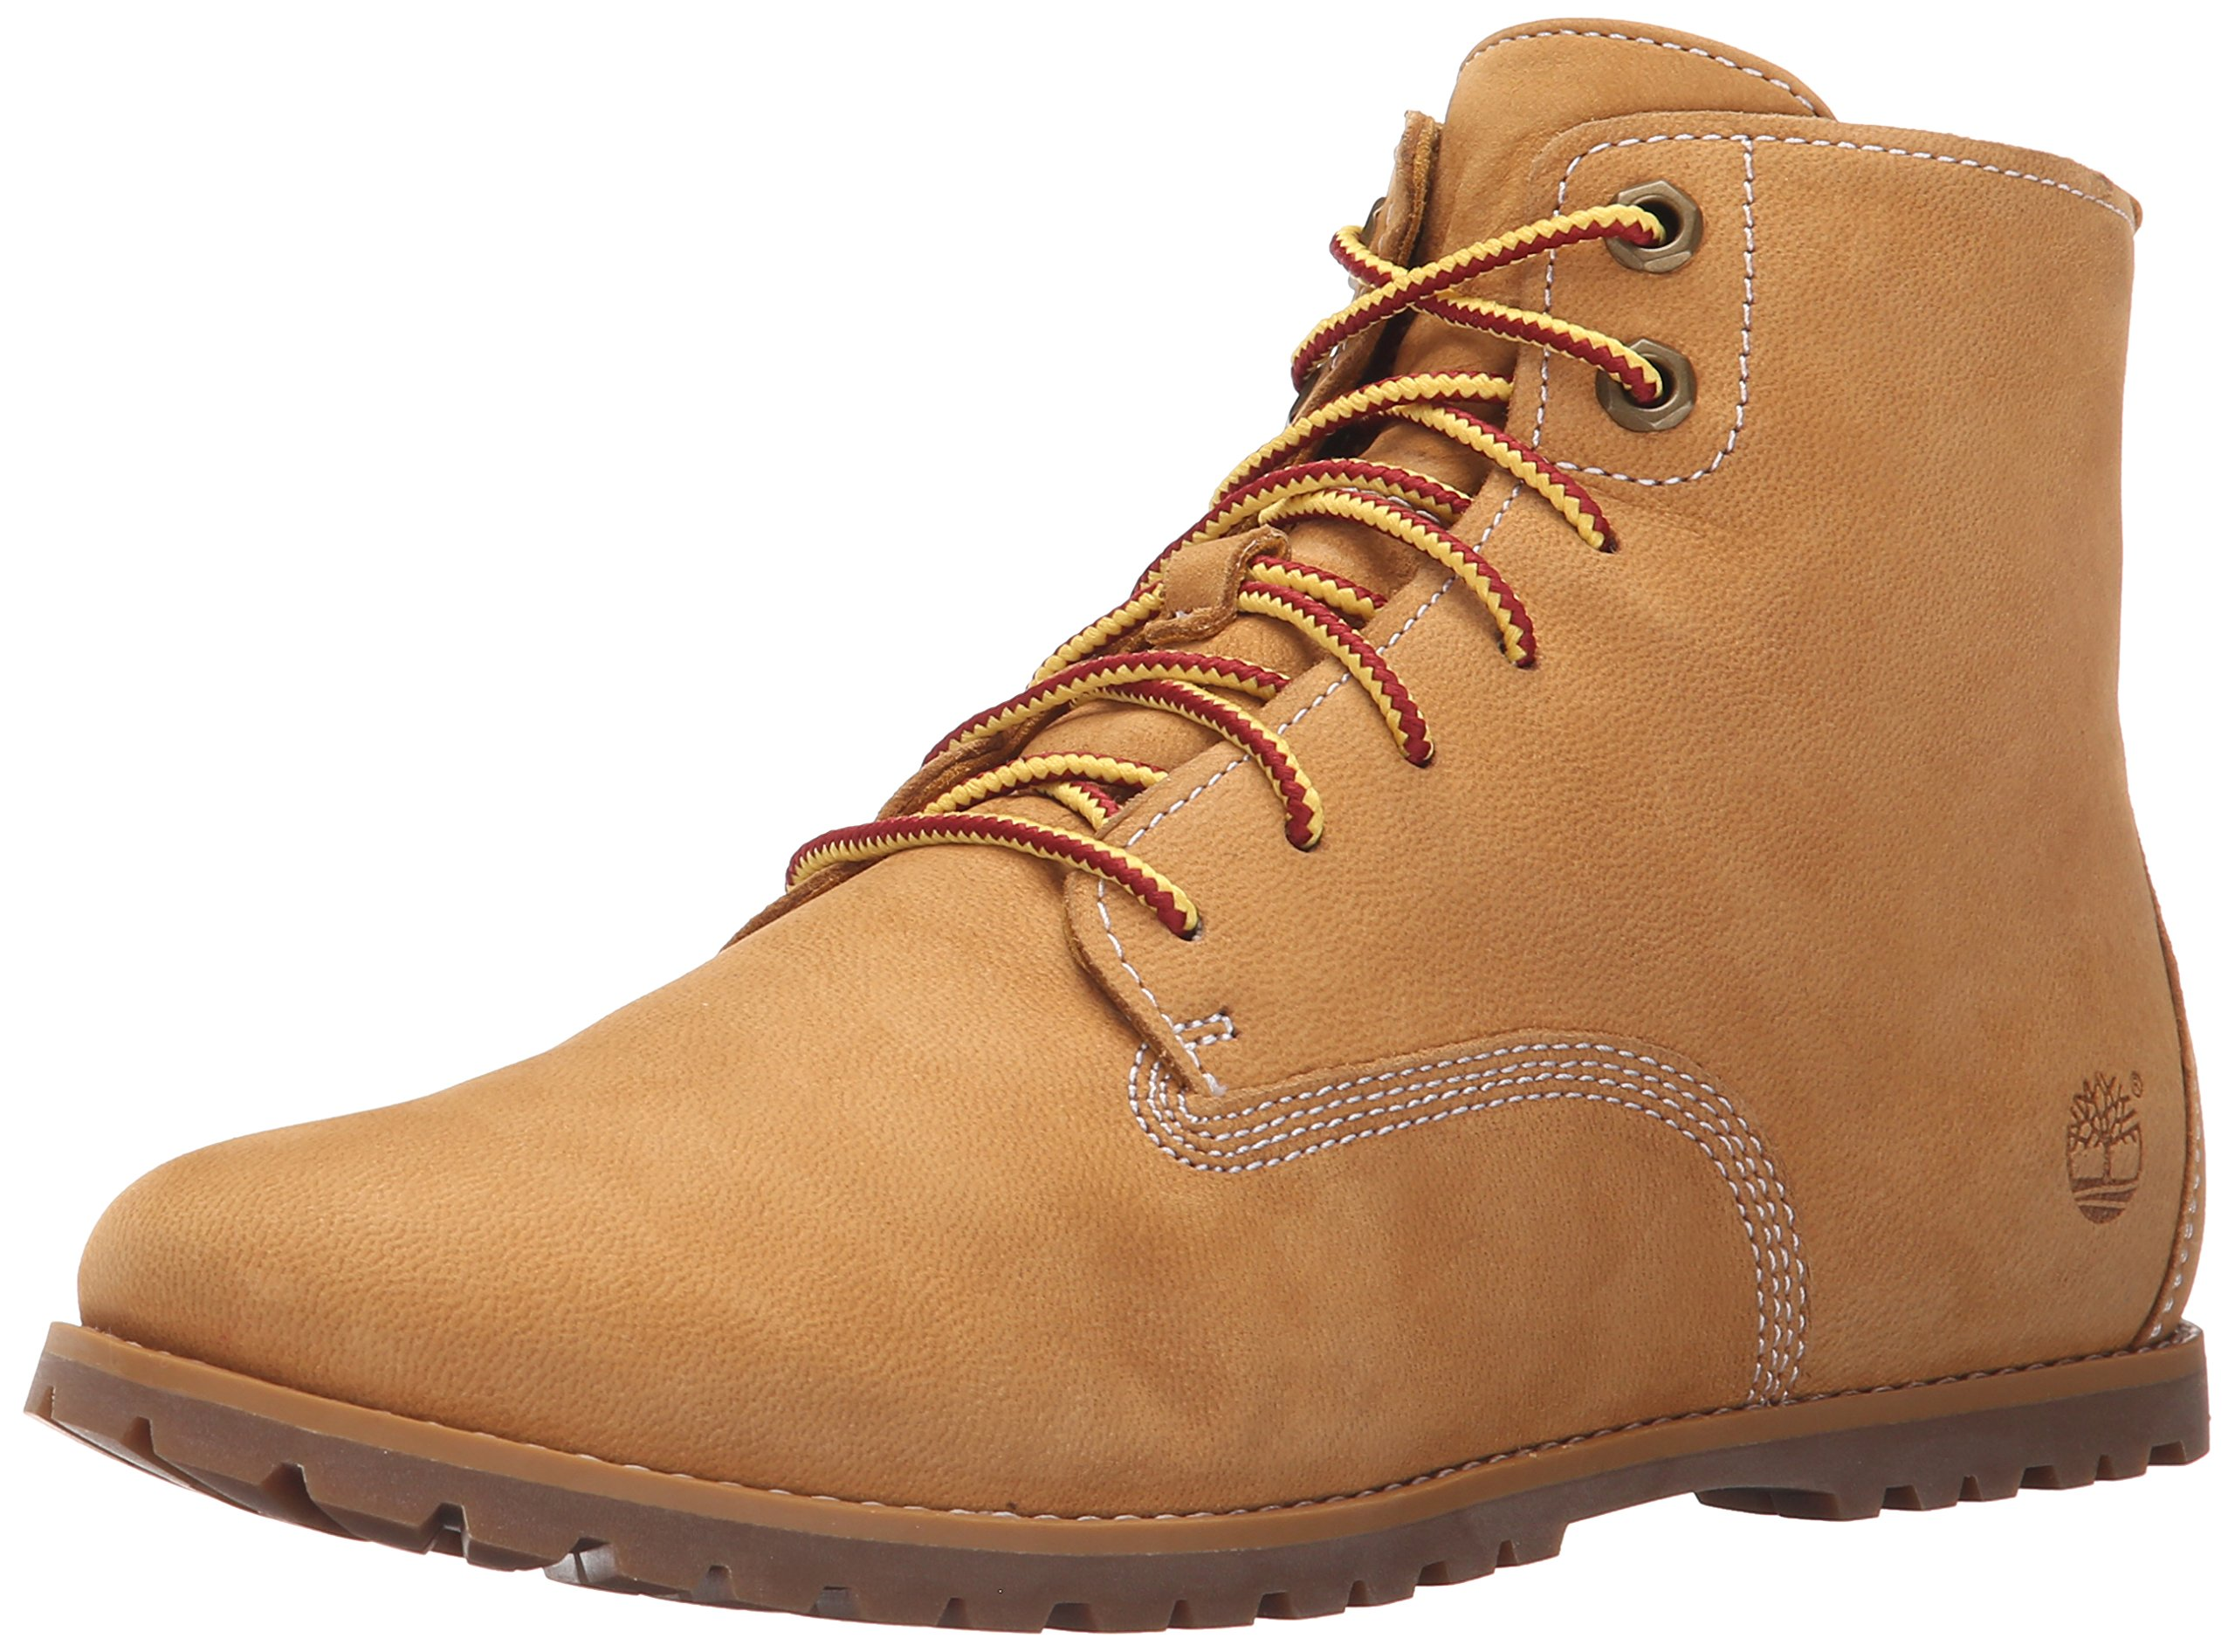 Timberland Women's Joslin Chukka Wheat Nubuck 5.5 B - Medium